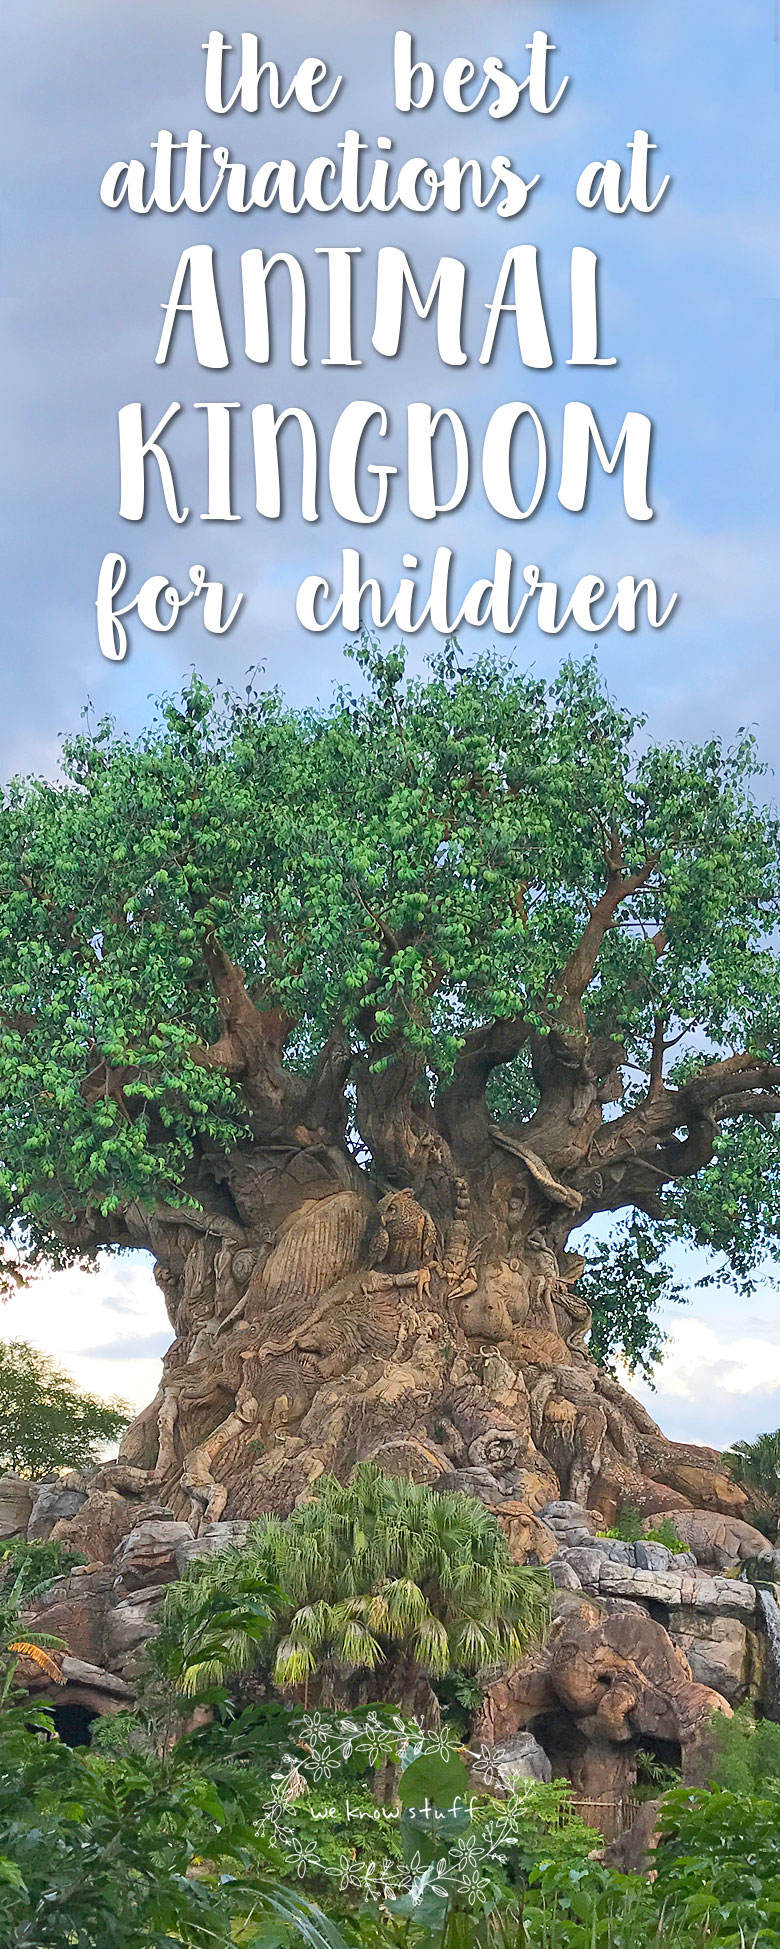 Recently, we vacationed in Disney World with our three boys and we had such a blast that I wanted to share my opinions about which rides are the best attractions at Animal Kingdom for young children and toddlers.